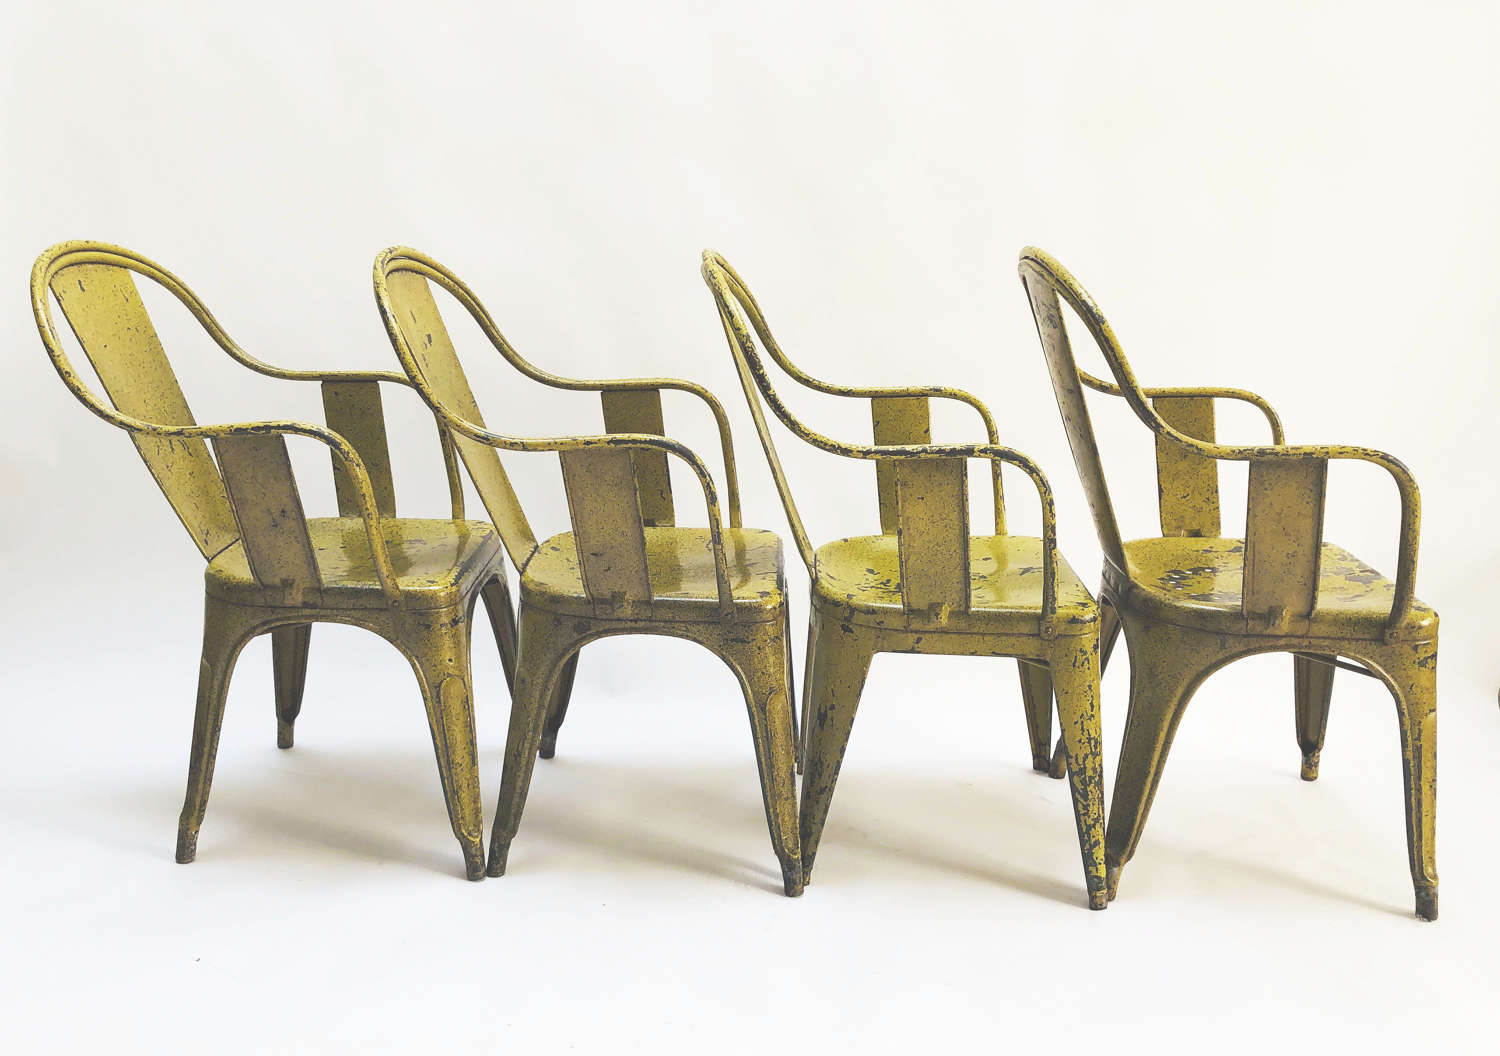 Set of 4 French Tolix Armchairs with original yellow finish - c 1920